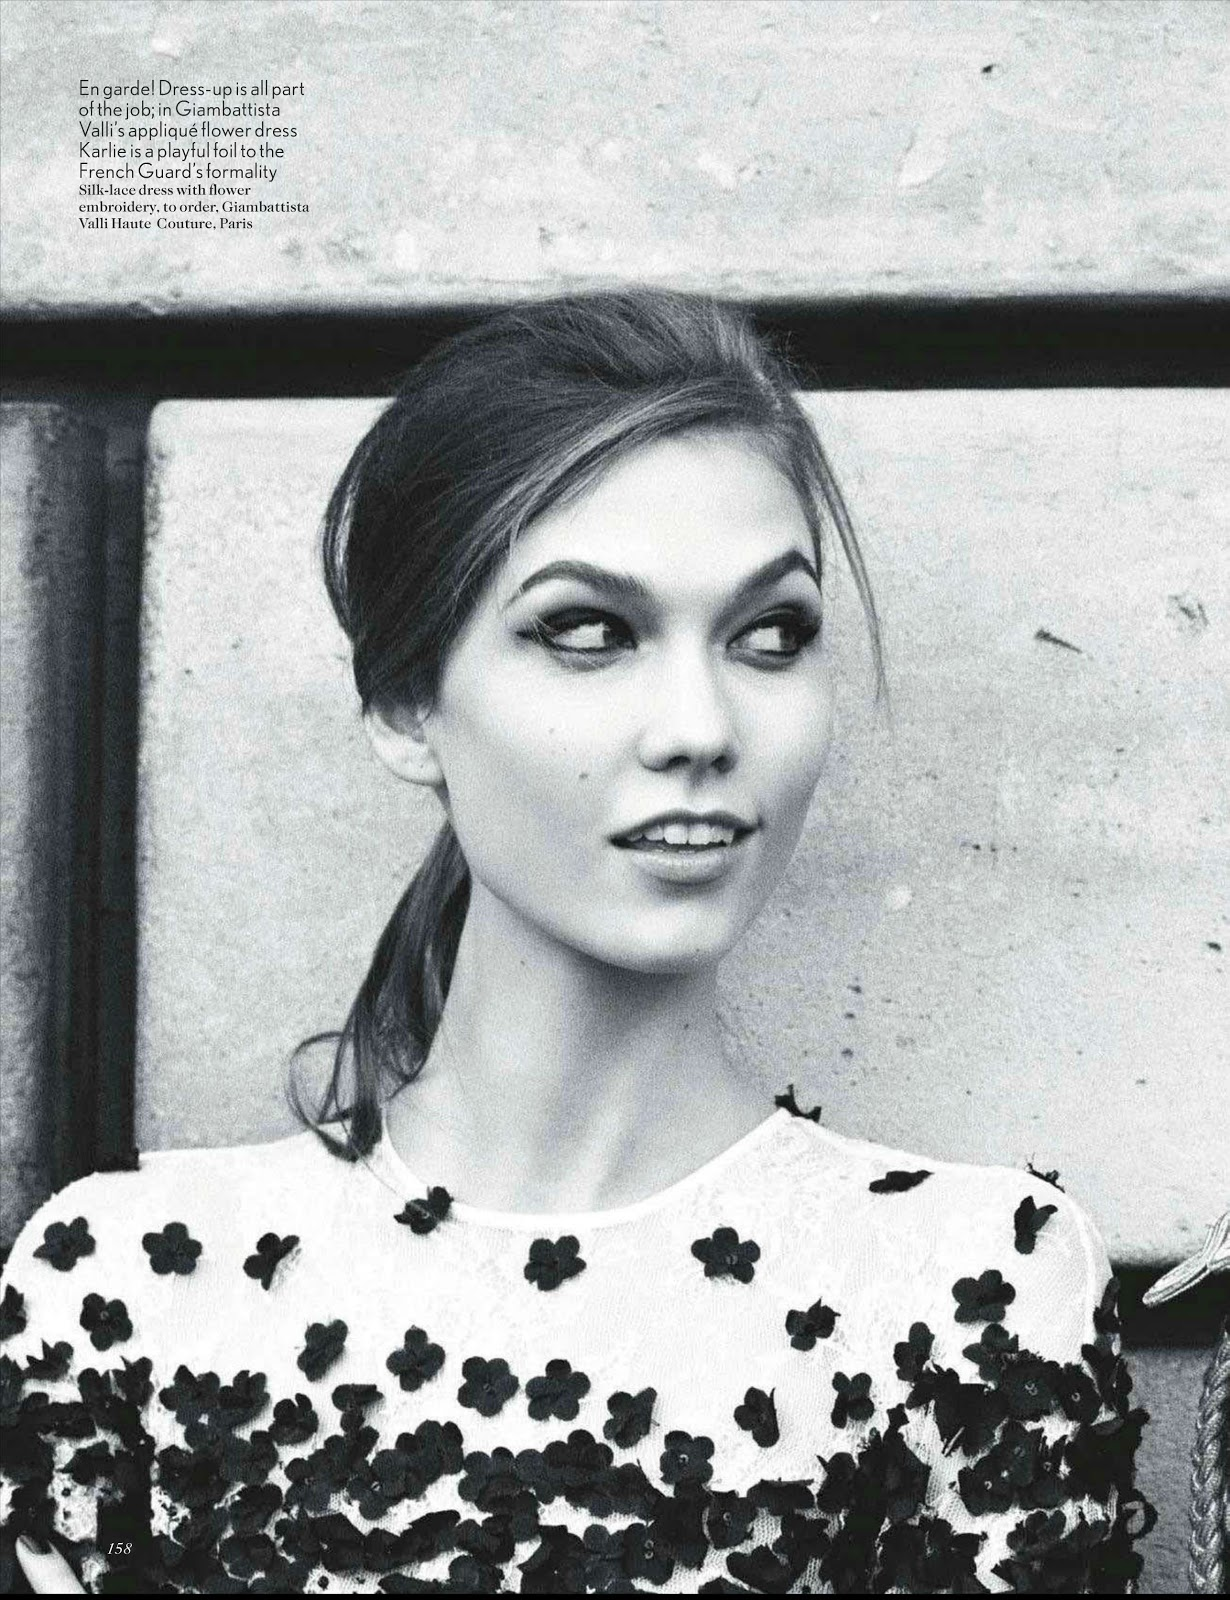 http://2.bp.blogspot.com/-nhB8N54SeJA/UNGvfSXMW-I/AAAAAAAAFhQ/PS7GXkrrwLc/s1600/Vogue-UK-May-2012-Karlie-Kloss-09.jpg